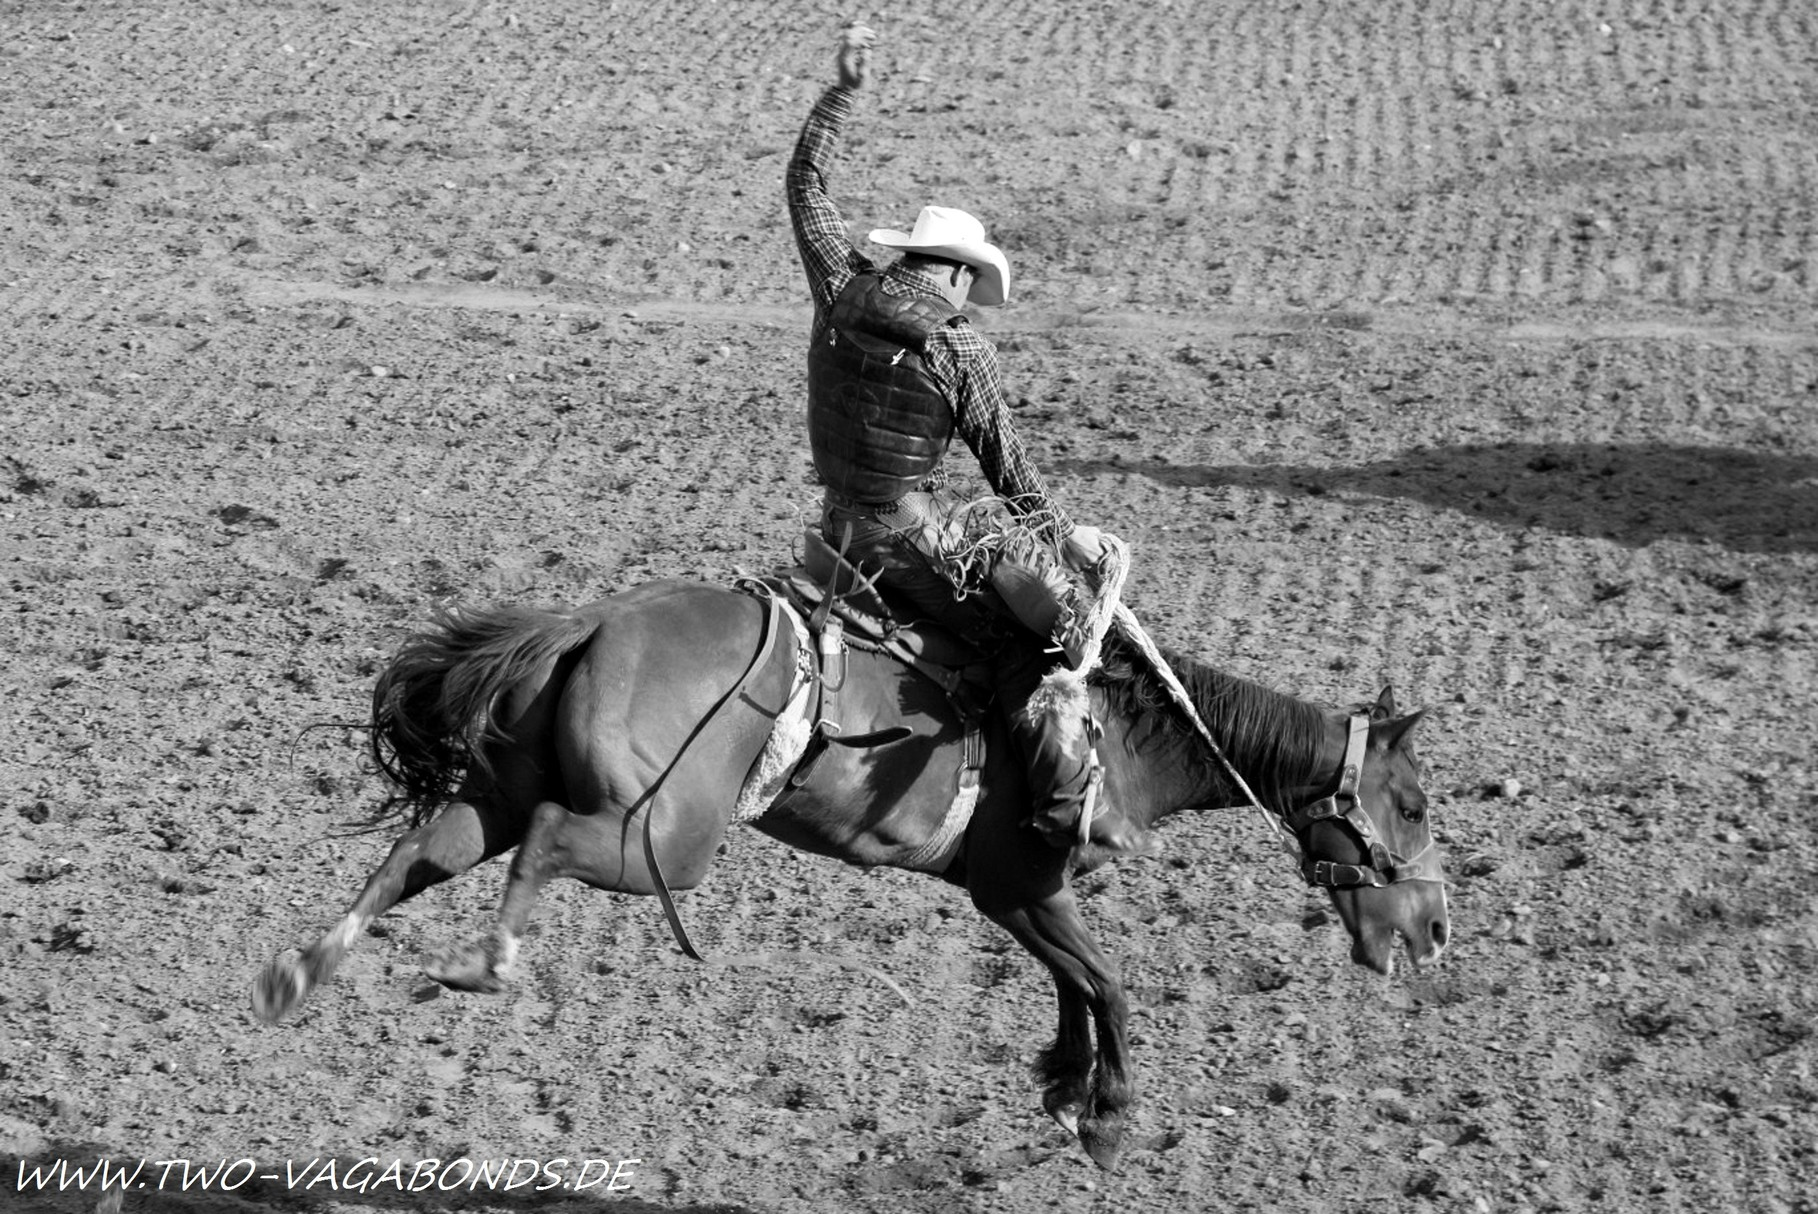 USA 2011 - WYOMING - RODEO IN CODY